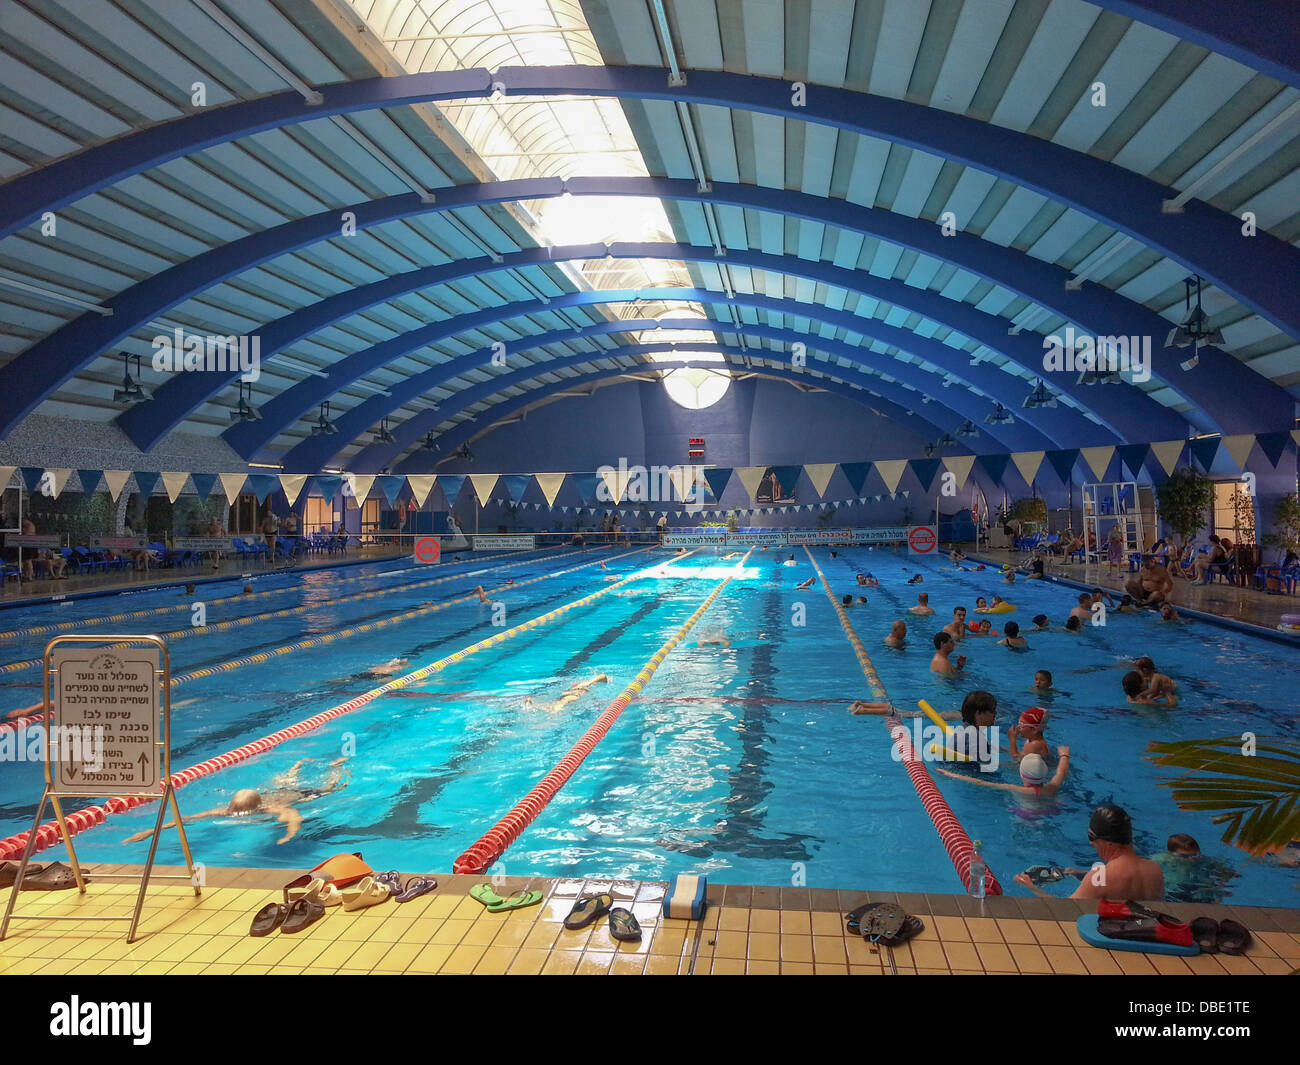 Indoor olympic sized swimming pool at the technion haifa israel stock photo royalty free for How much is an olympic swimming pool